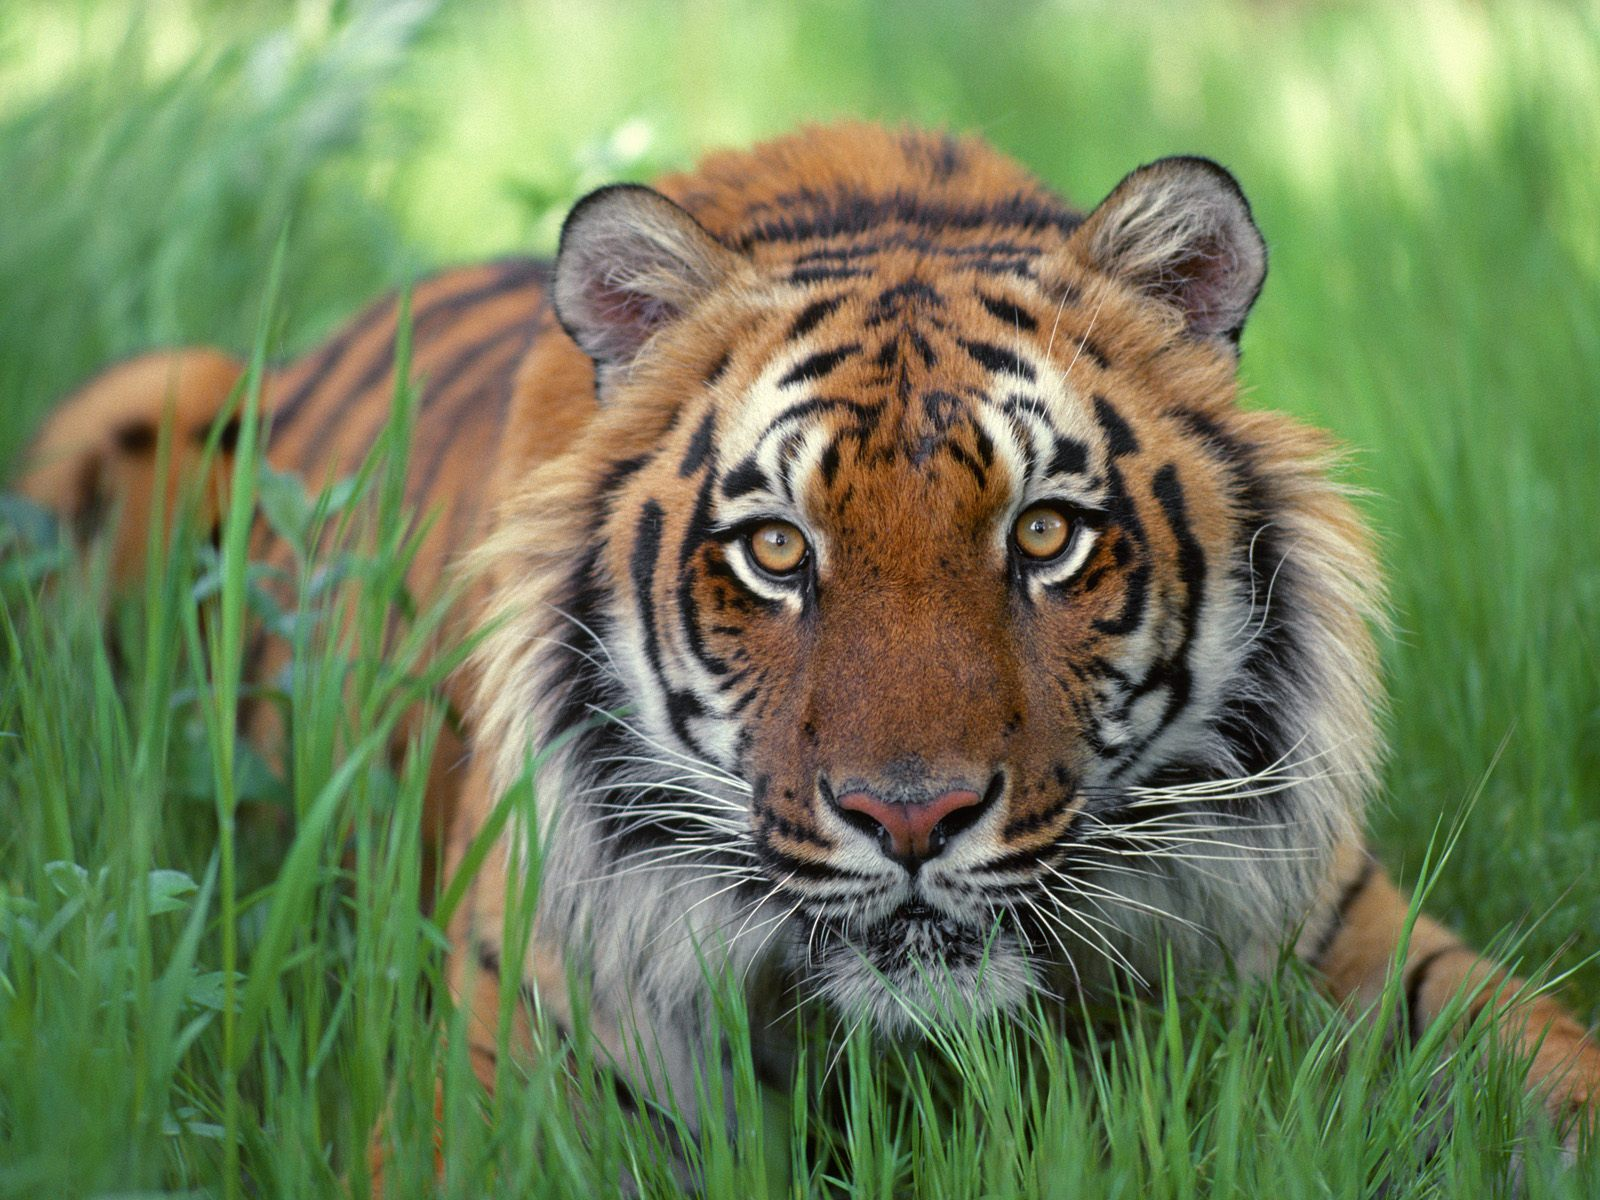 http://2.bp.blogspot.com/-vjhMyvVLNSw/TgnYxdtF4xI/AAAAAAAAI10/IlKR9R9BxW8/s1600/The-best-top-desktop-tiger-wallpapers-hd-tiger-wallpaper-31.jpg